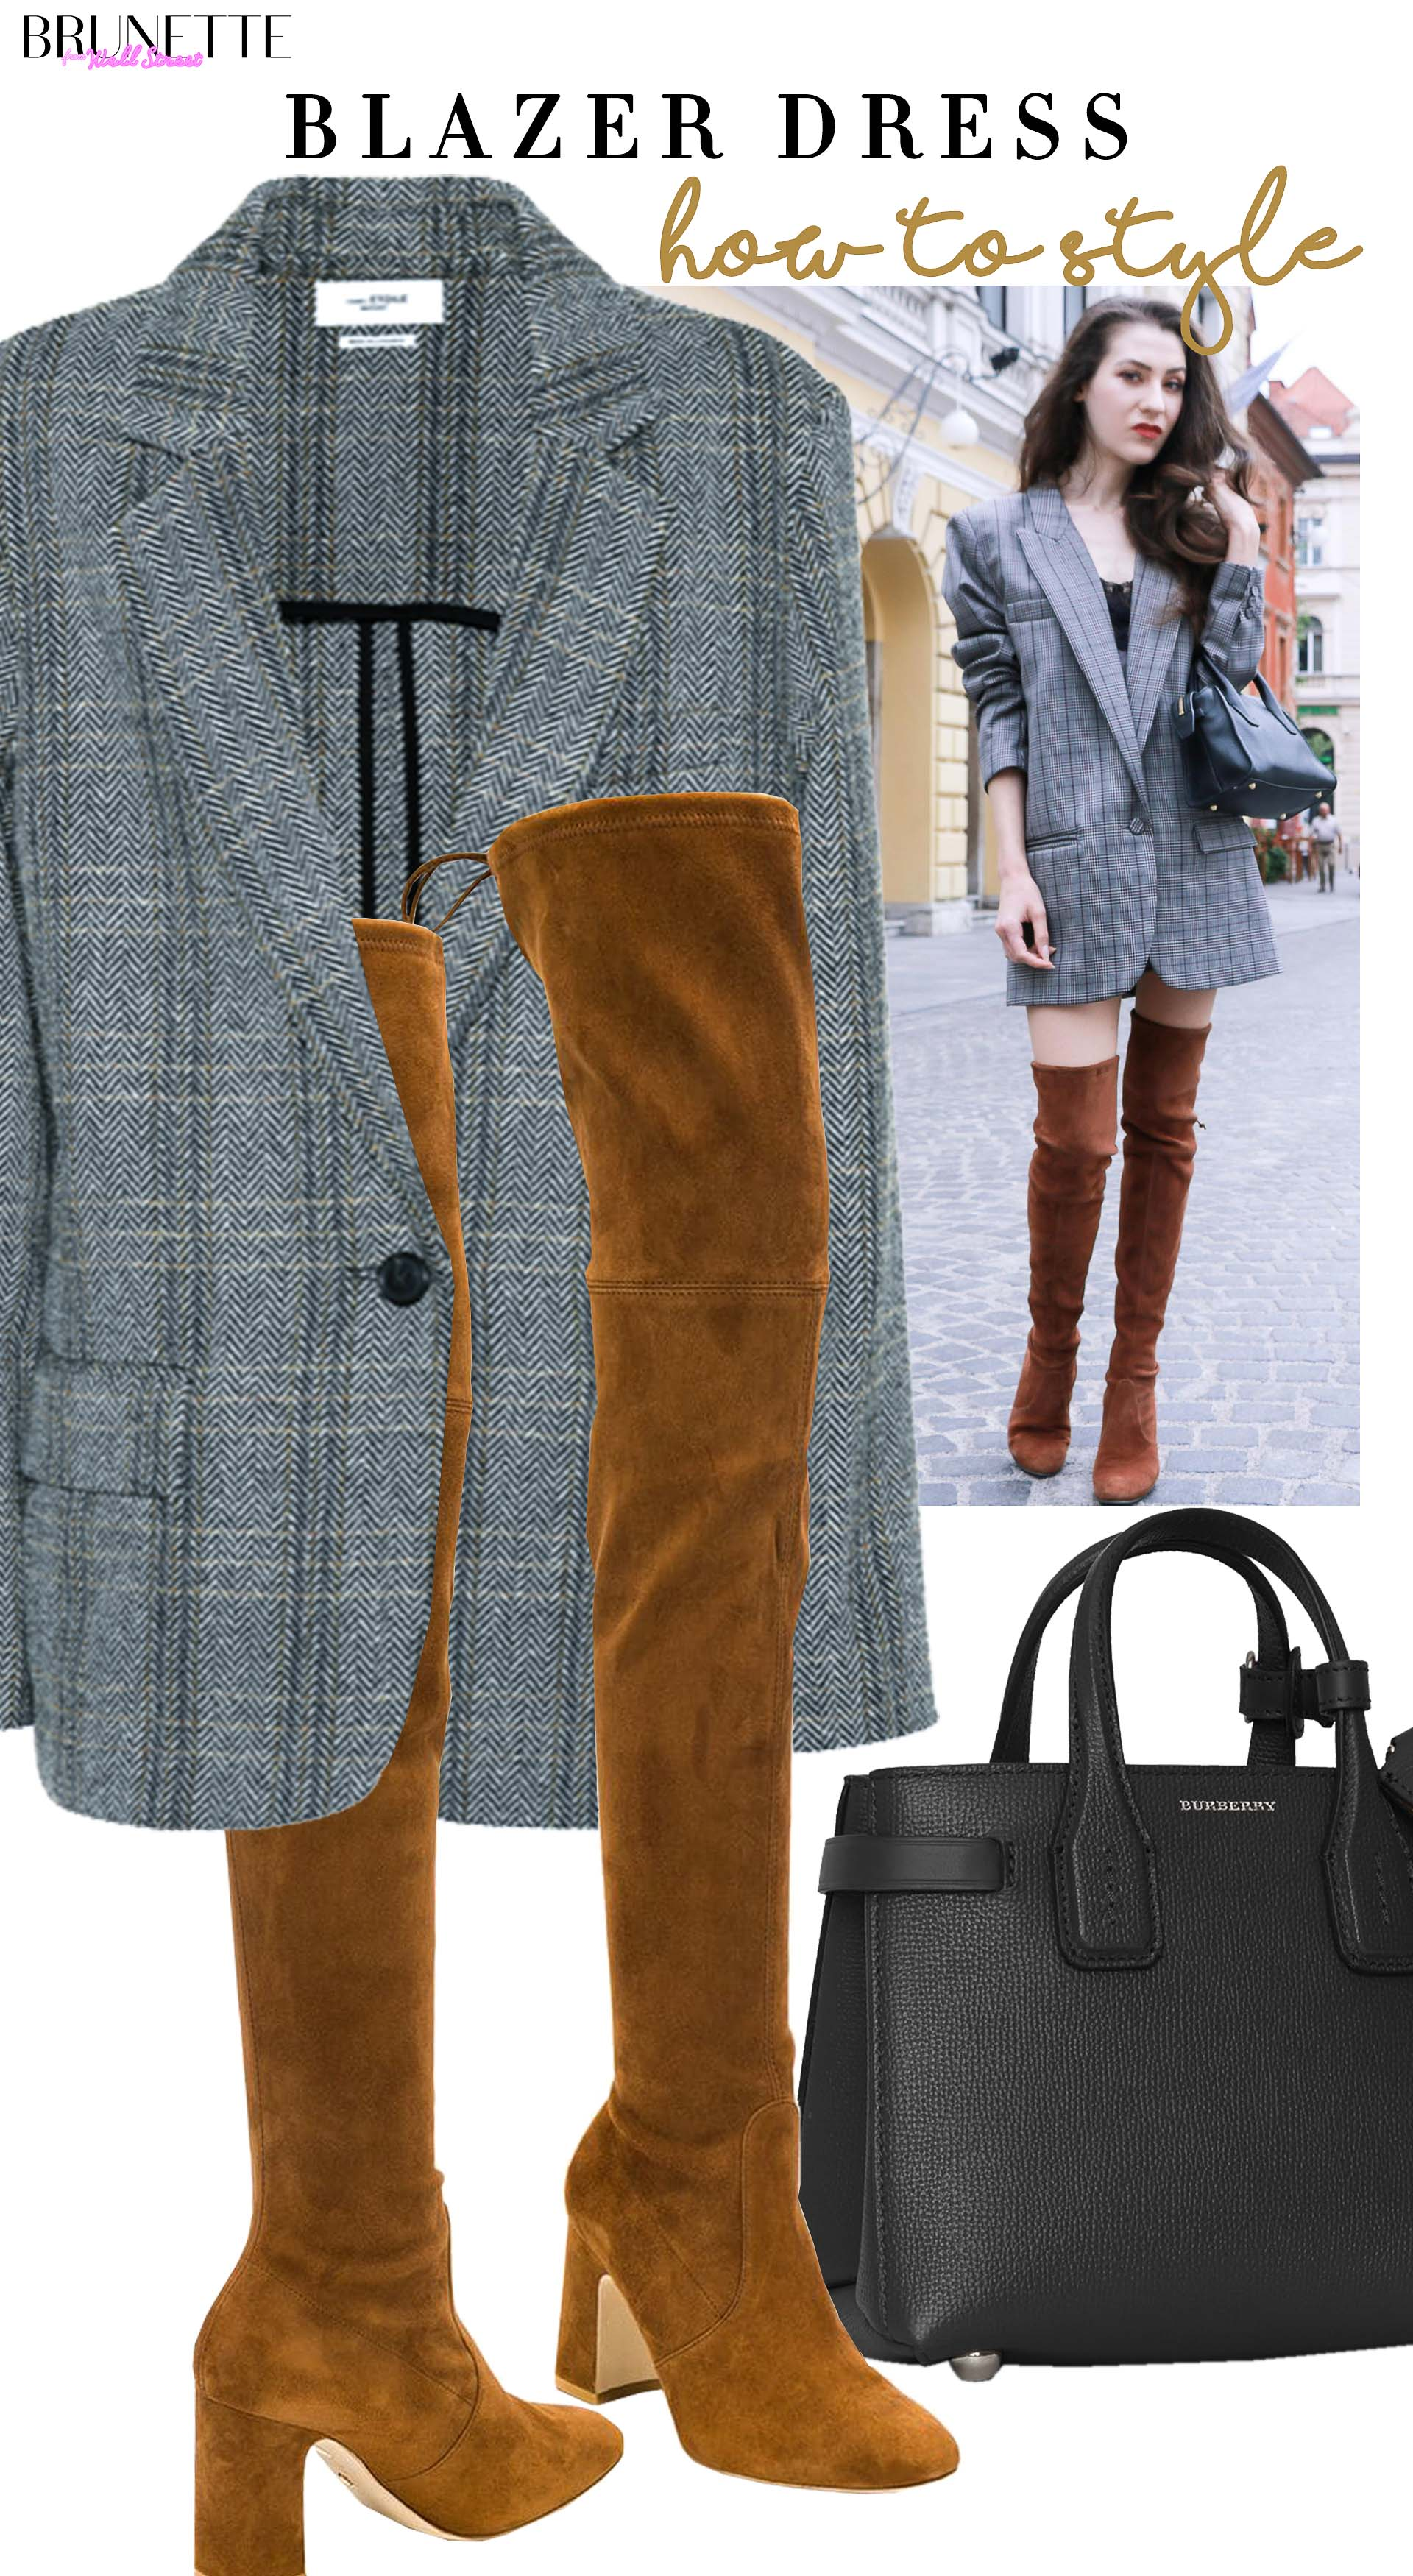 Brunette from Wall Street how to style blazer dress over the knee boots for date in fall